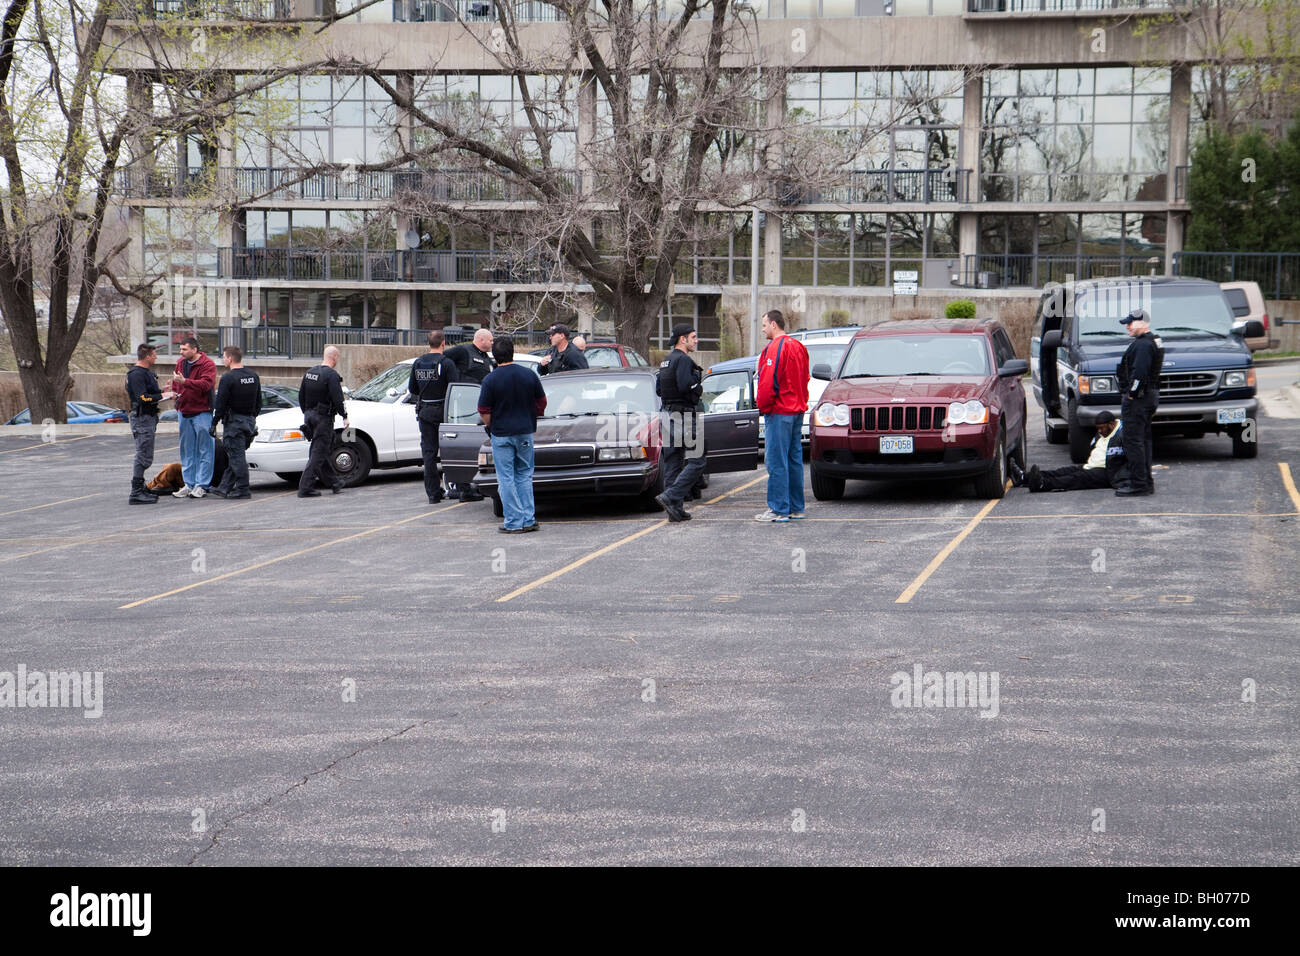 Police officers talking after arresting suspected drug dealers. Kansas City, MO, Police. - Stock Image